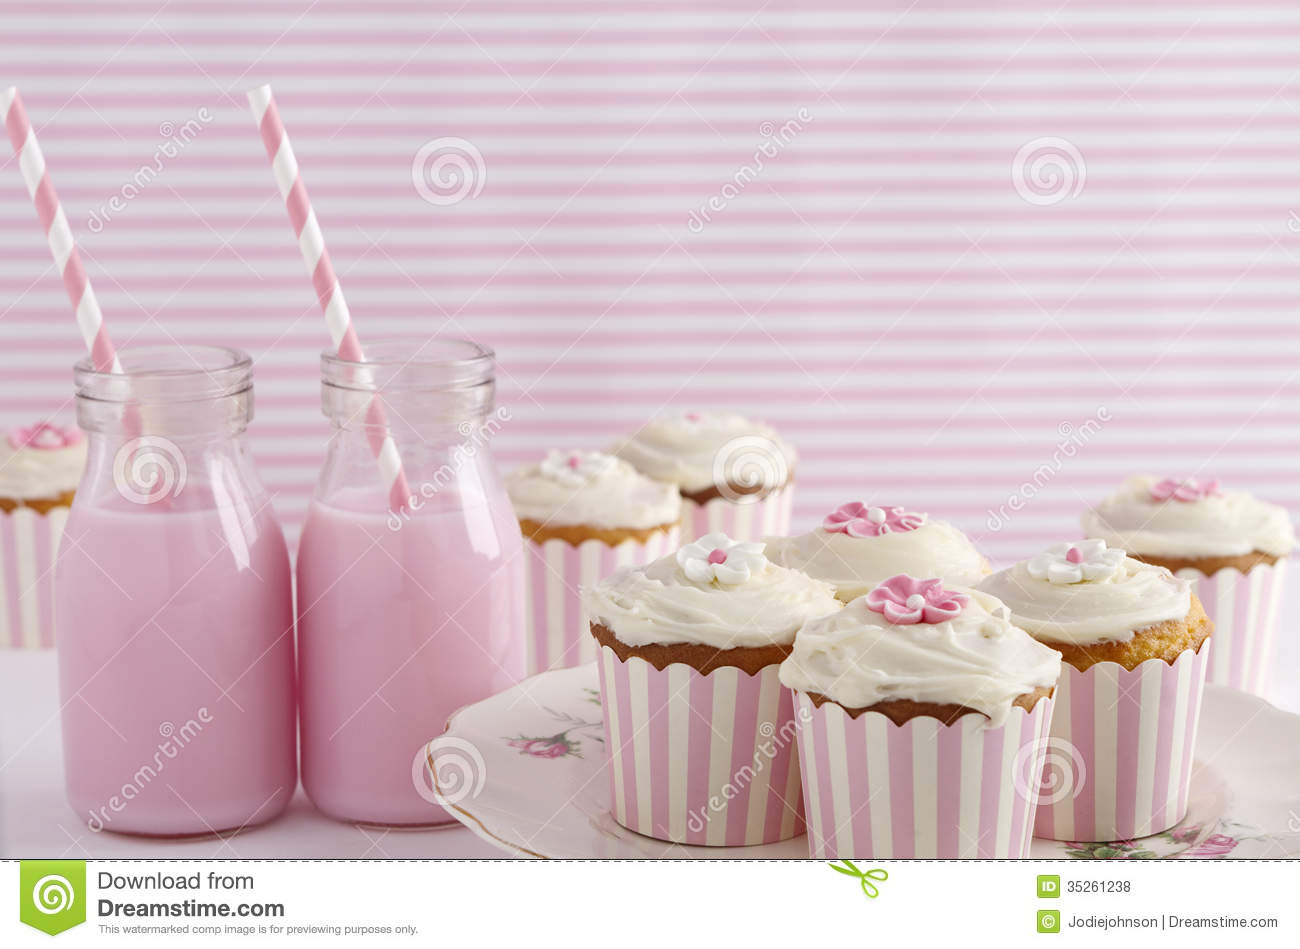 Pink Retro Theme Dessert Table Birthday Party Royalty Free